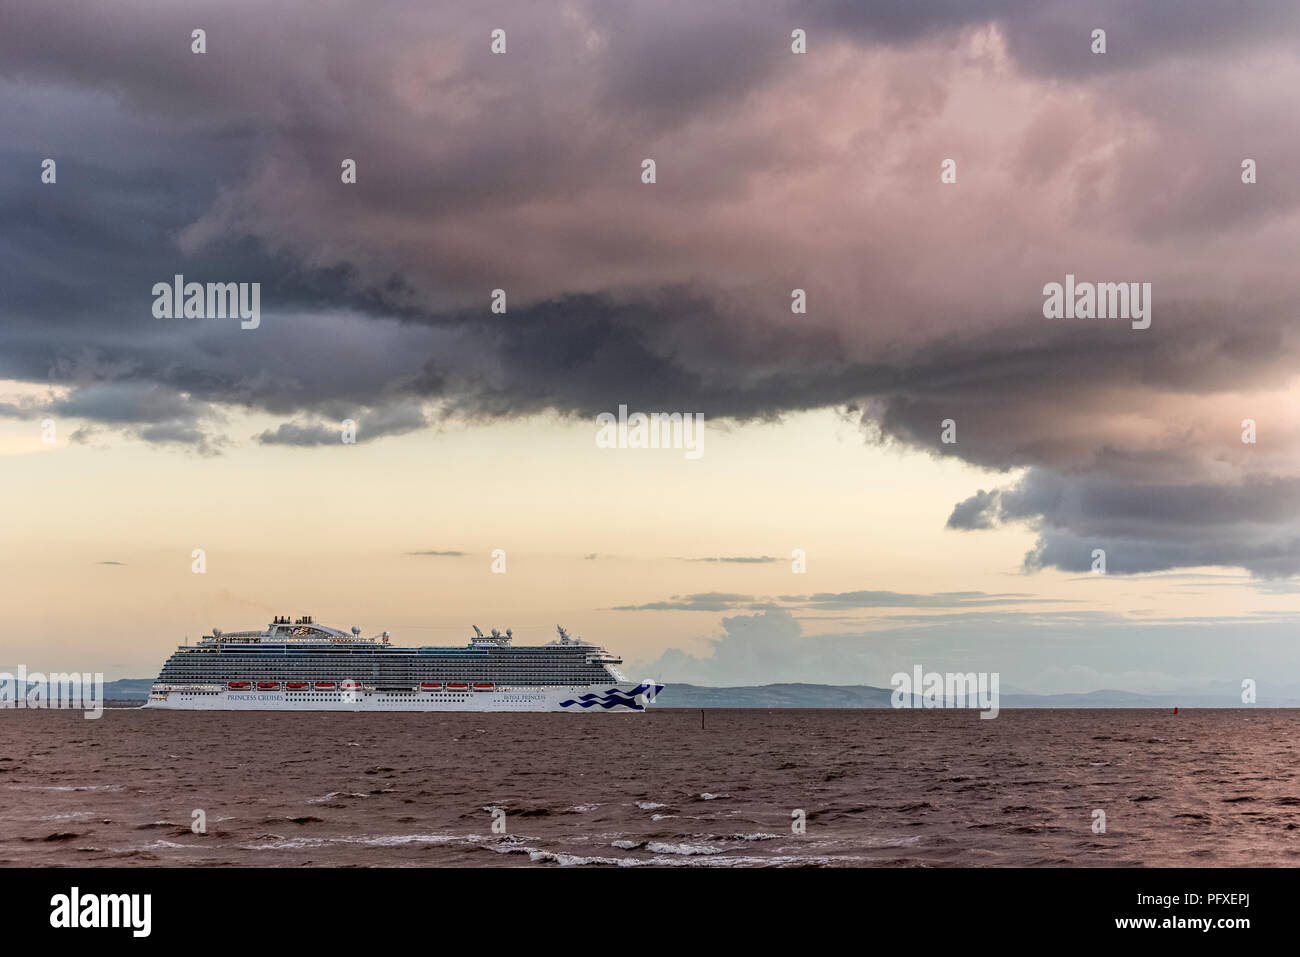 Royal Princess cruise liner off Crosby beach evening departure. - Stock Image